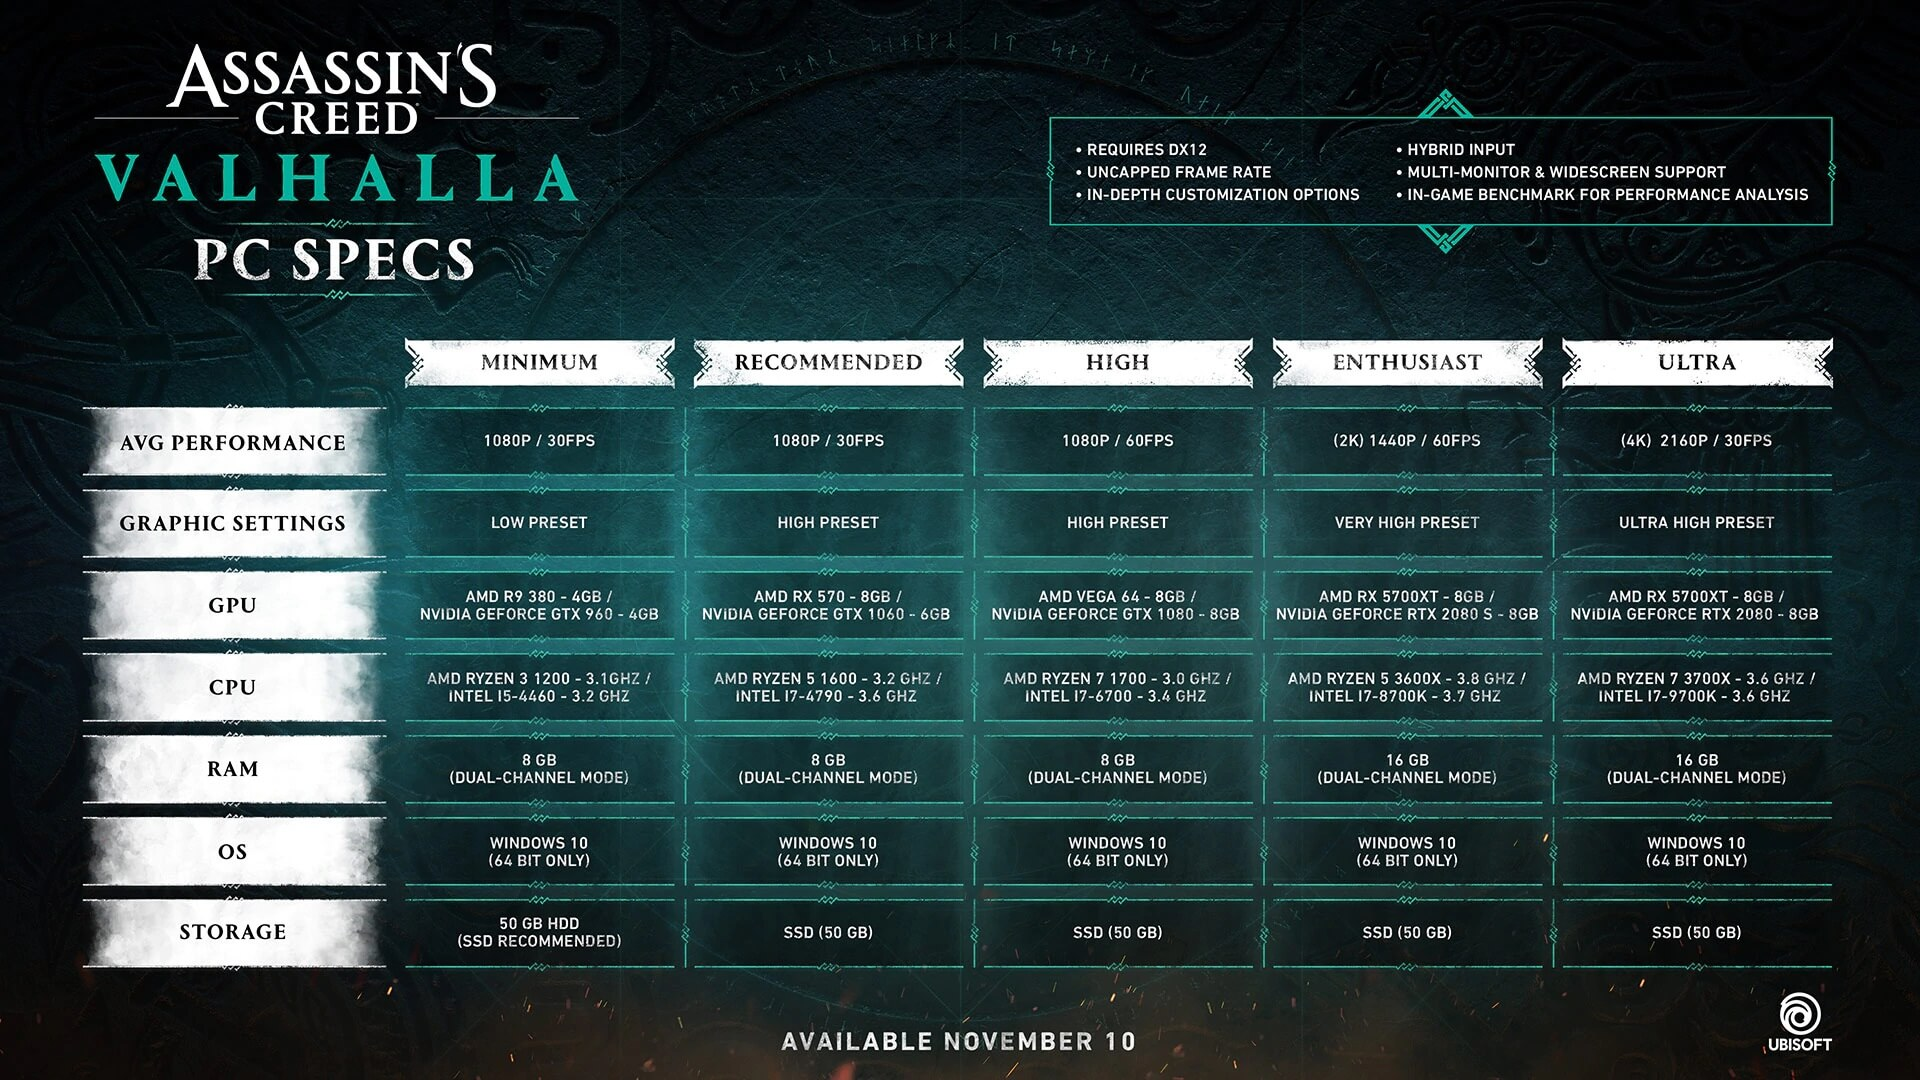 Assassin's Creed Valhalla PC requirements